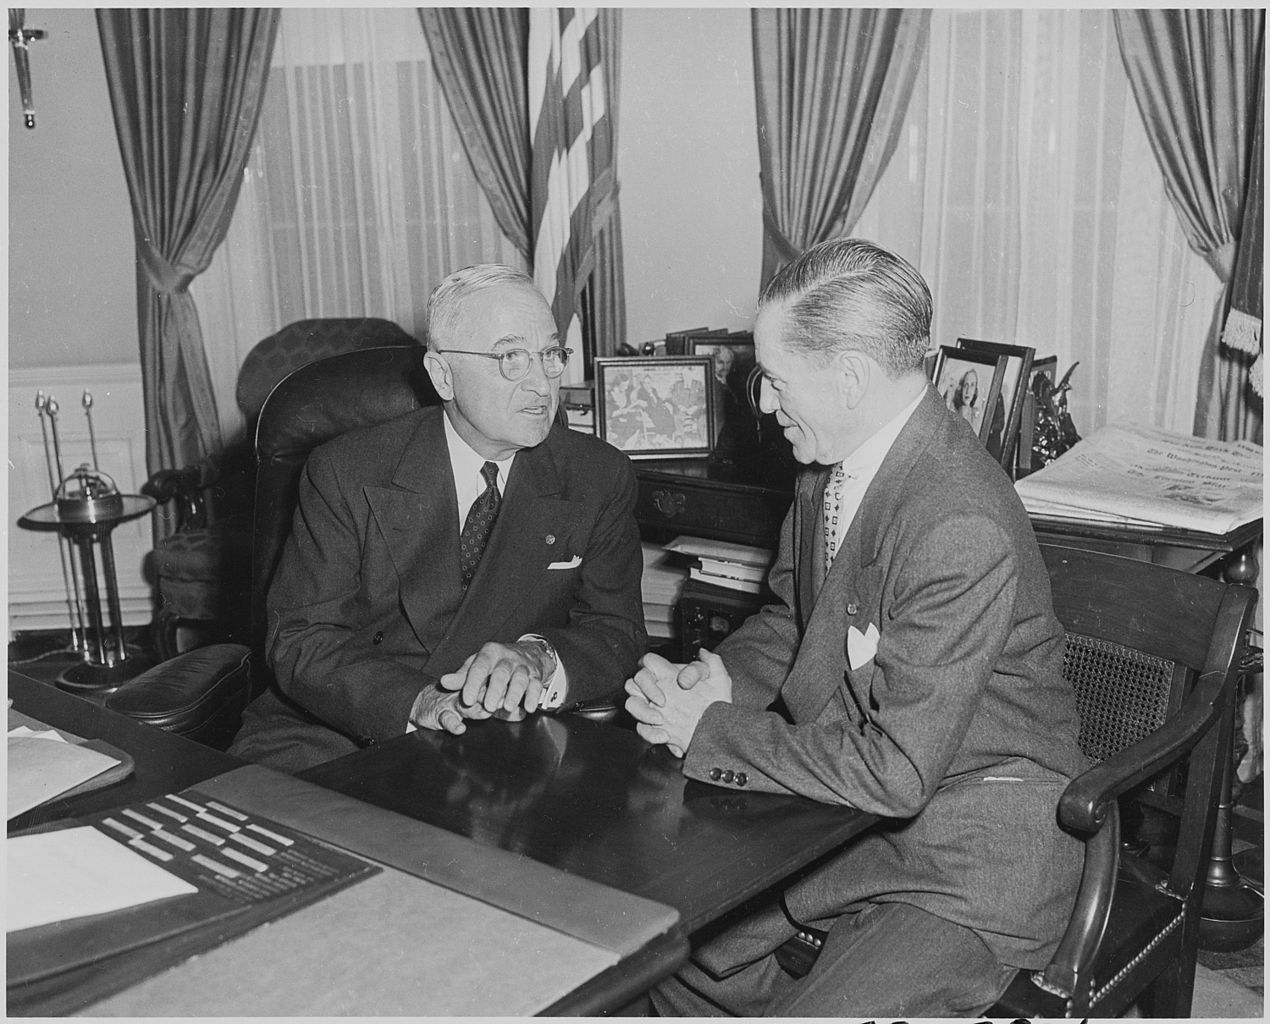 FilePhotograph of President Truman in the Oval Office